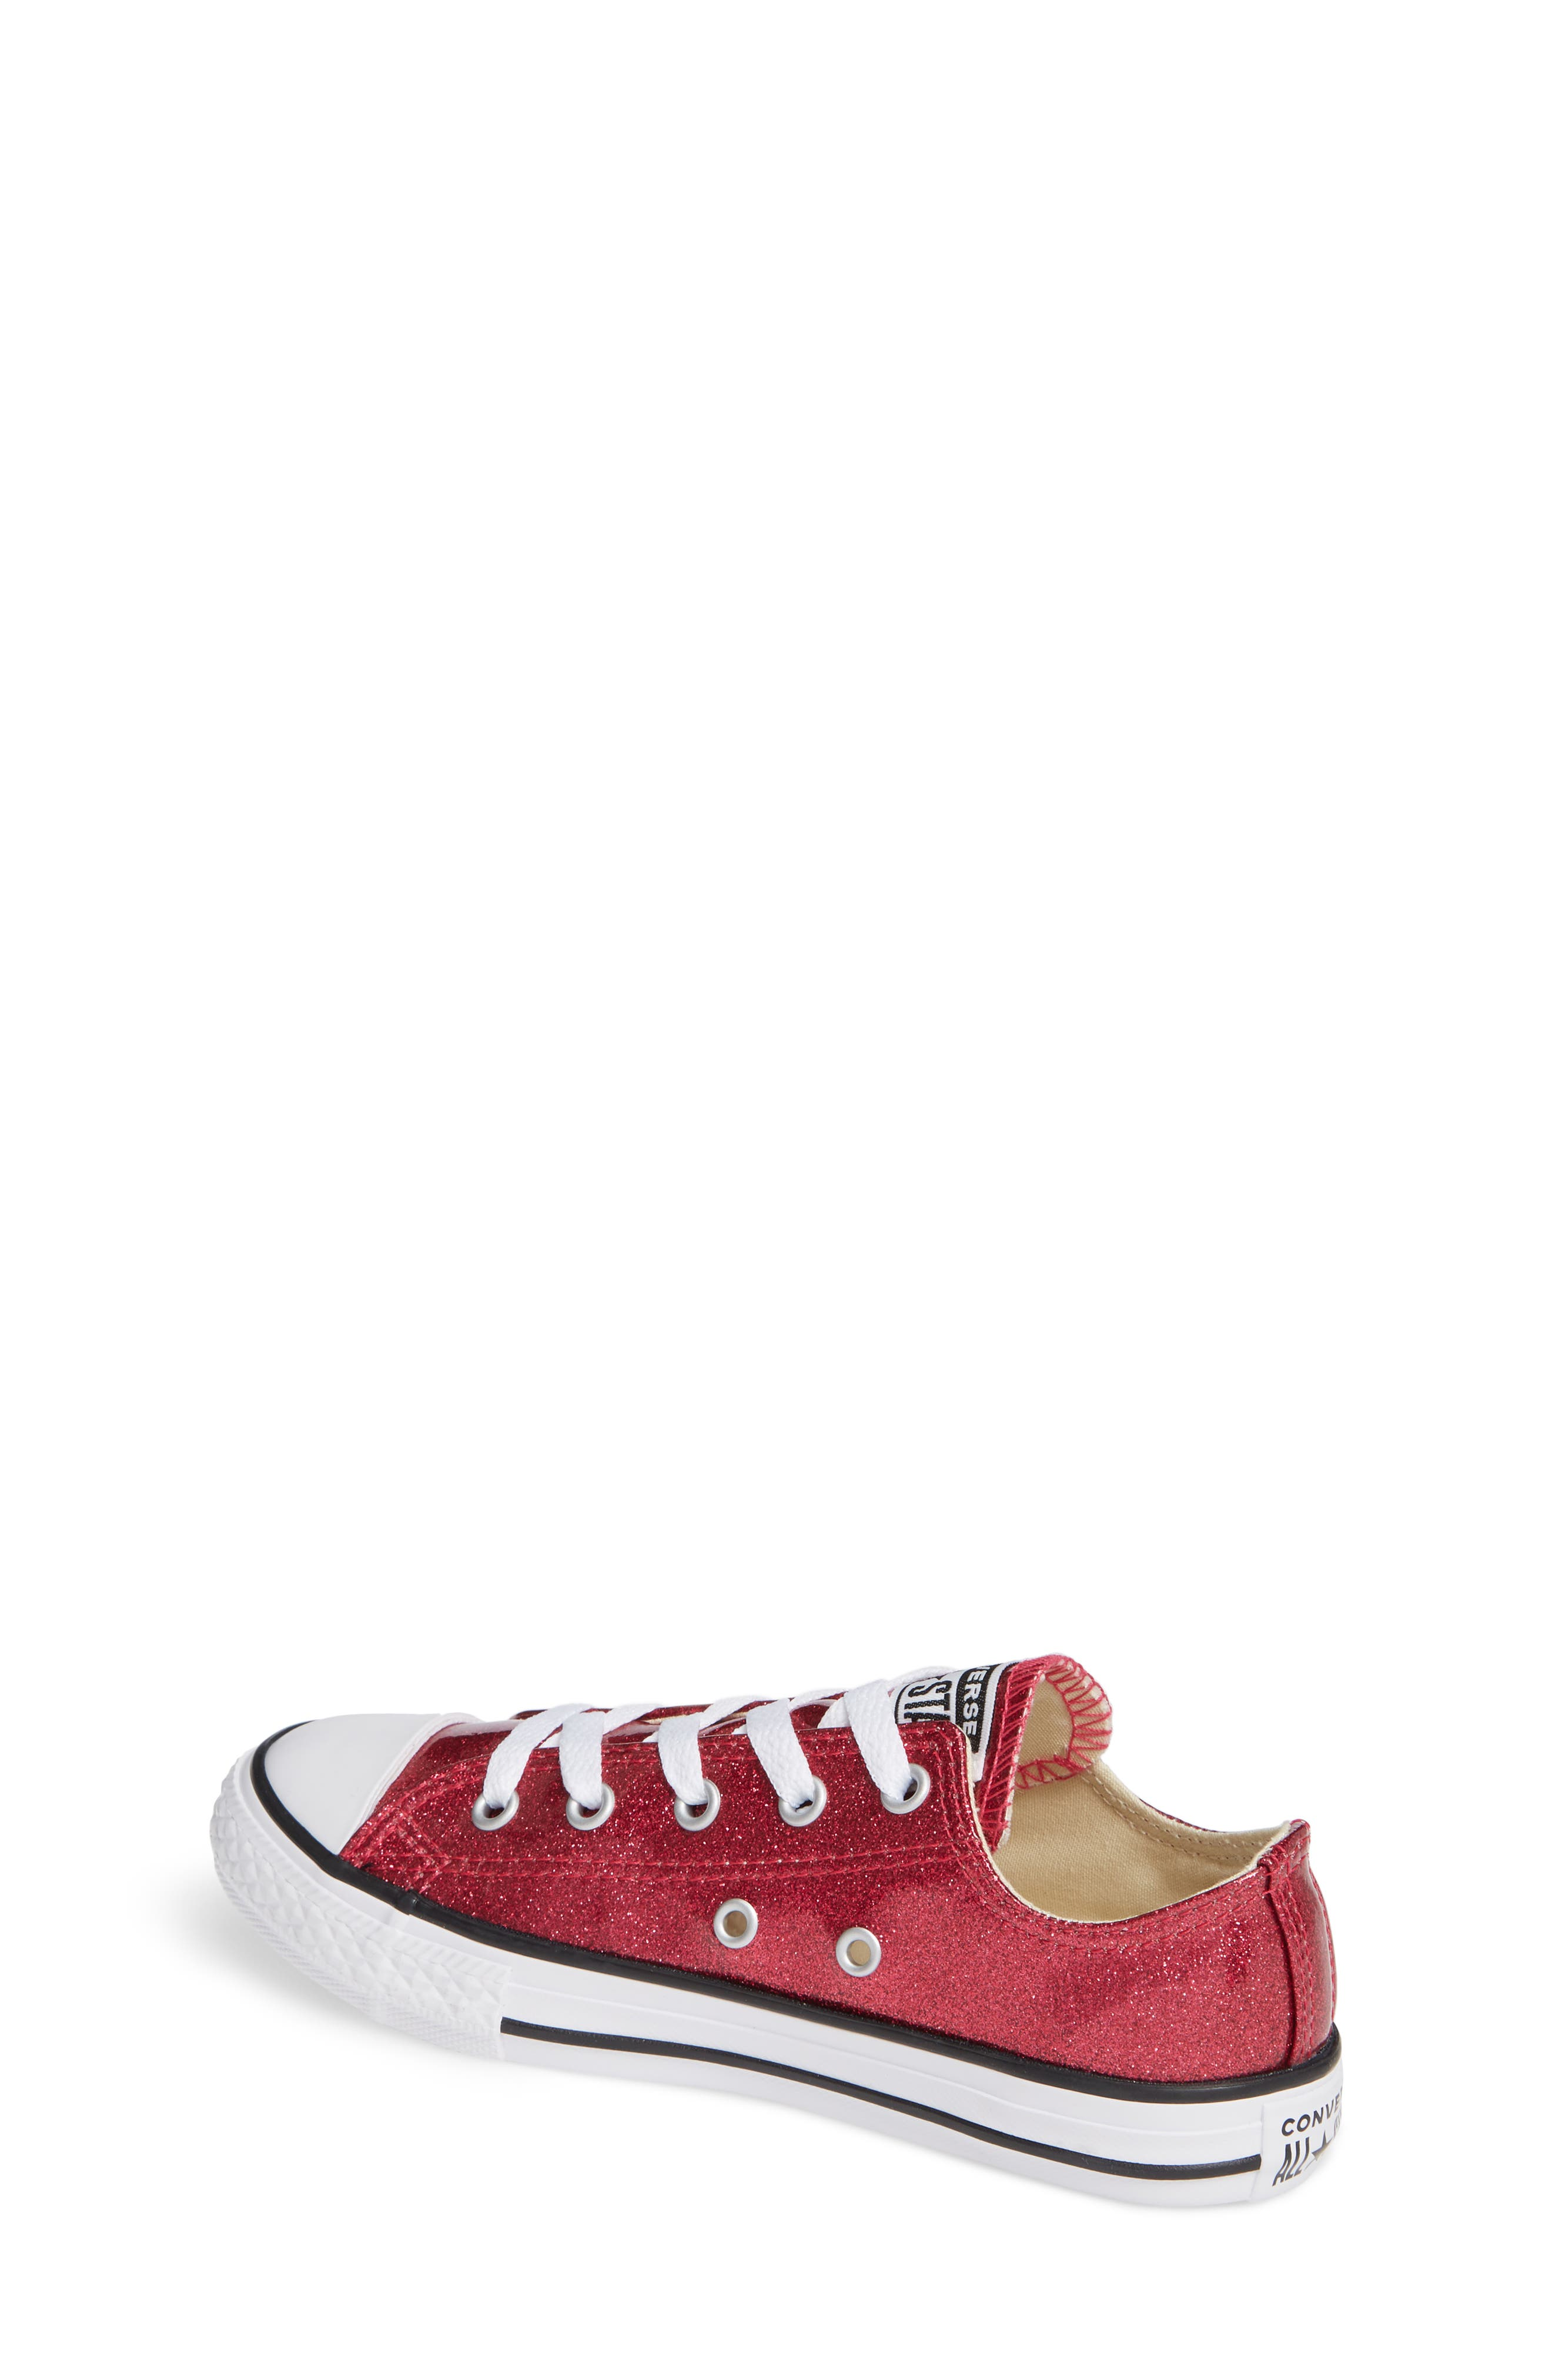 CONVERSE,                             All Star<sup>®</sup> Seasonal Glitter OX Low Top Sneaker,                             Alternate thumbnail 2, color,                             PINK POP